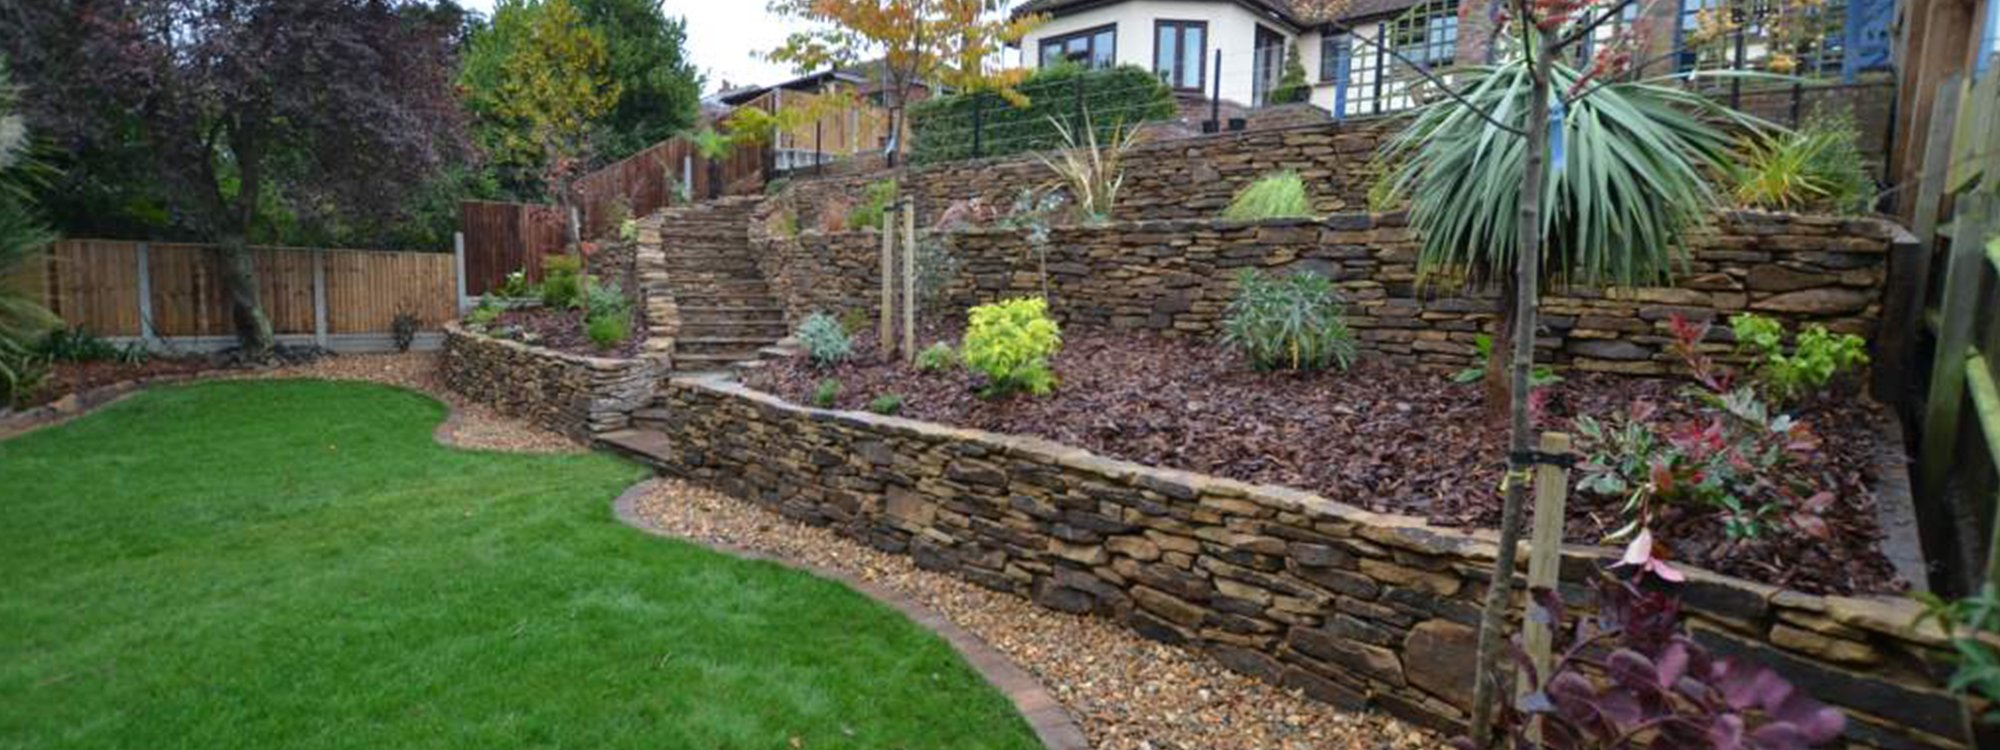 garden with rock walls